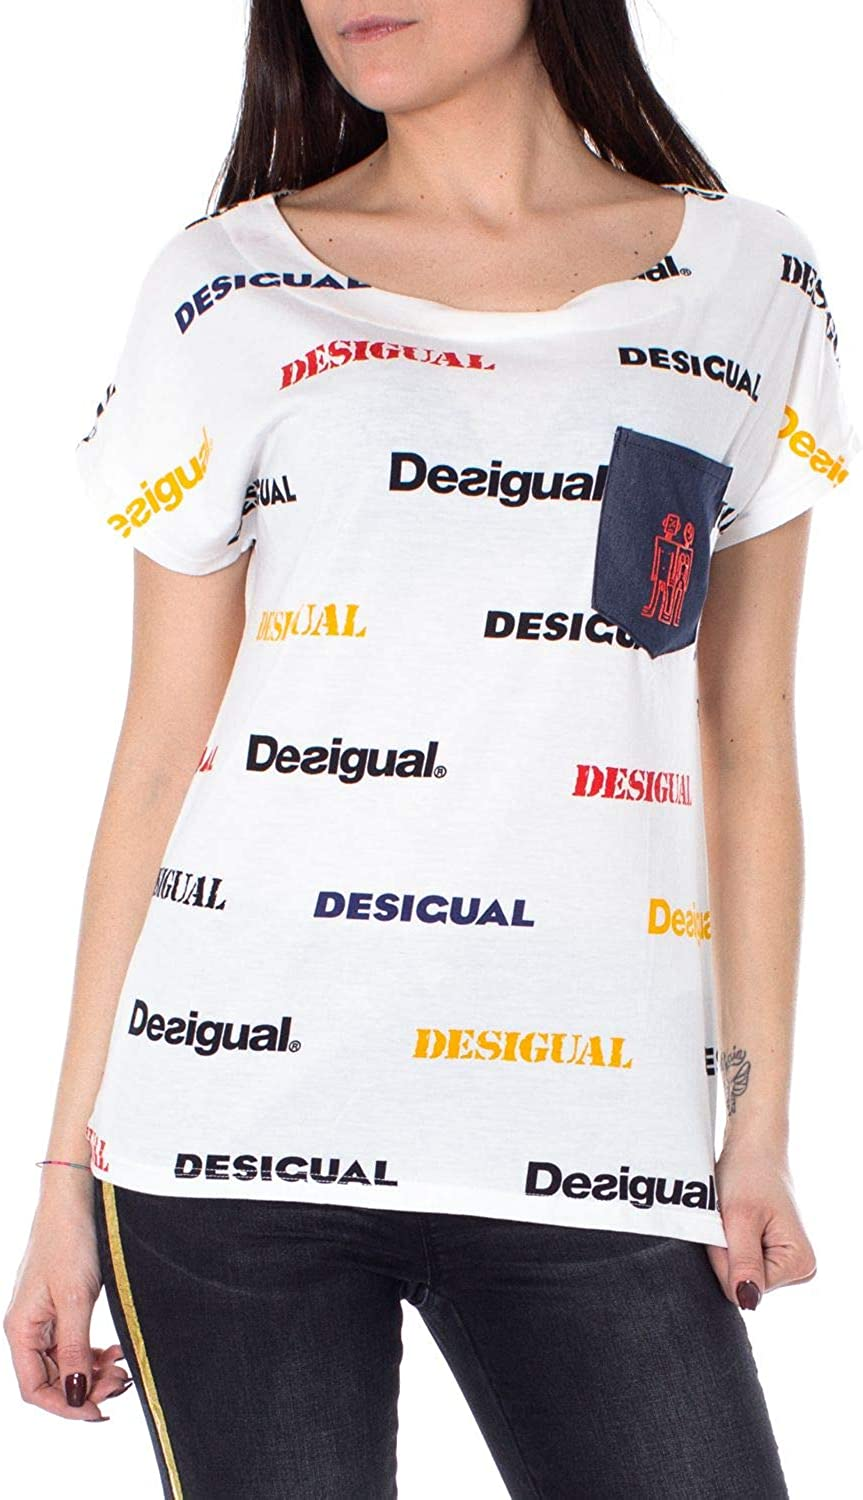 Desigual Women's 19SWTKCHWHITE White Cotton TShirt